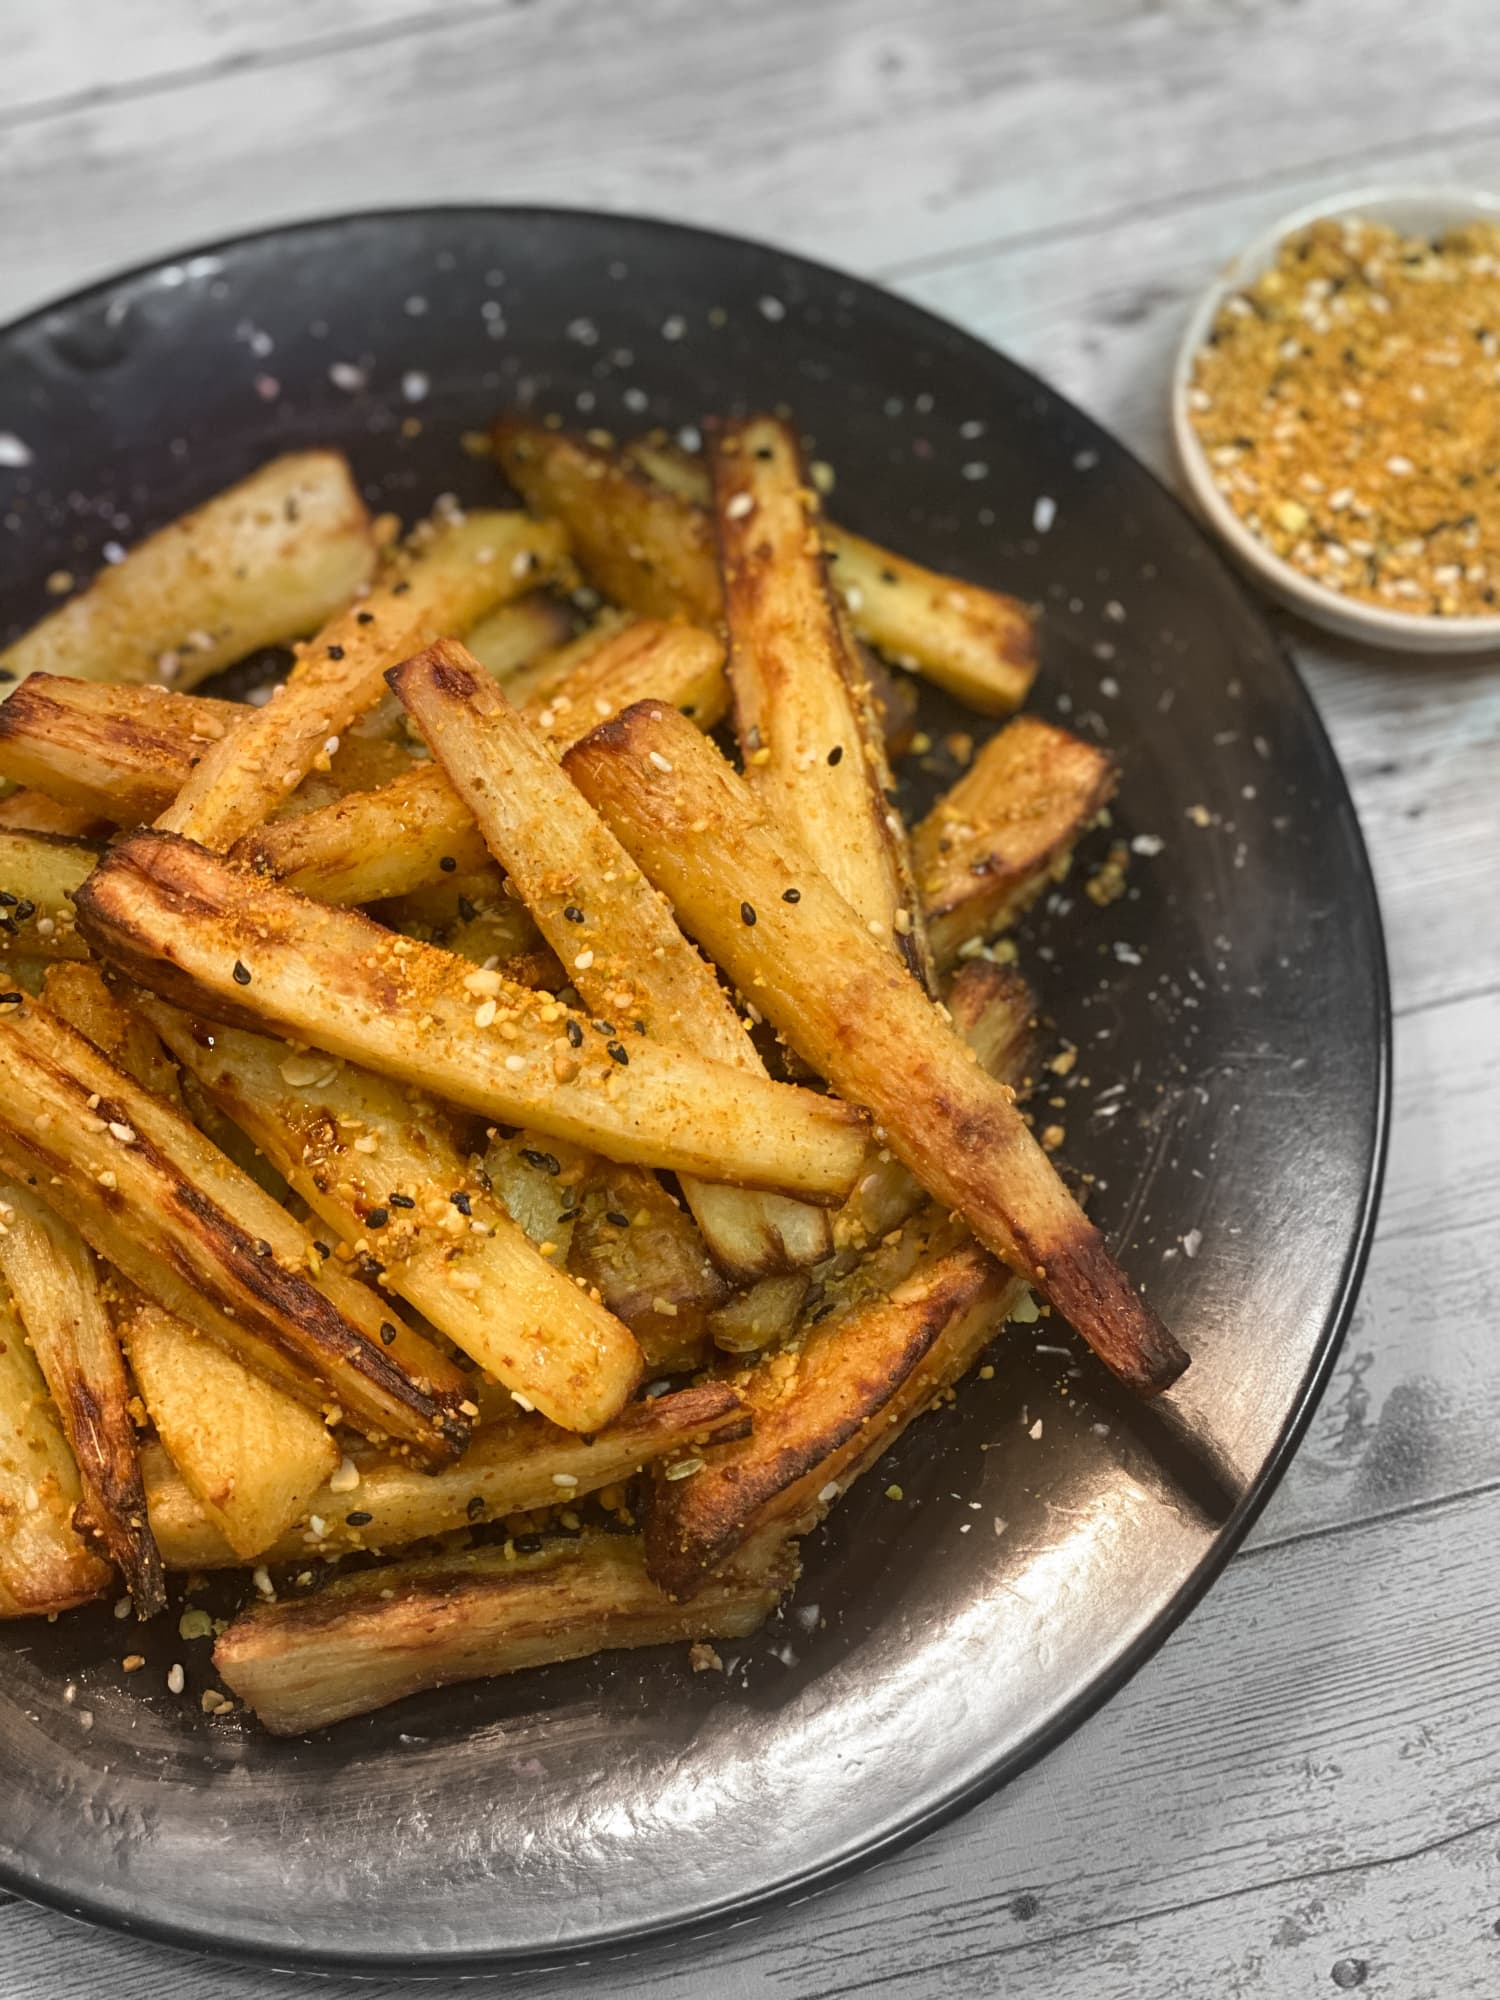 I Serve These Roasted Parsnips Like French Fries (They're Just as Easy and Tasty)